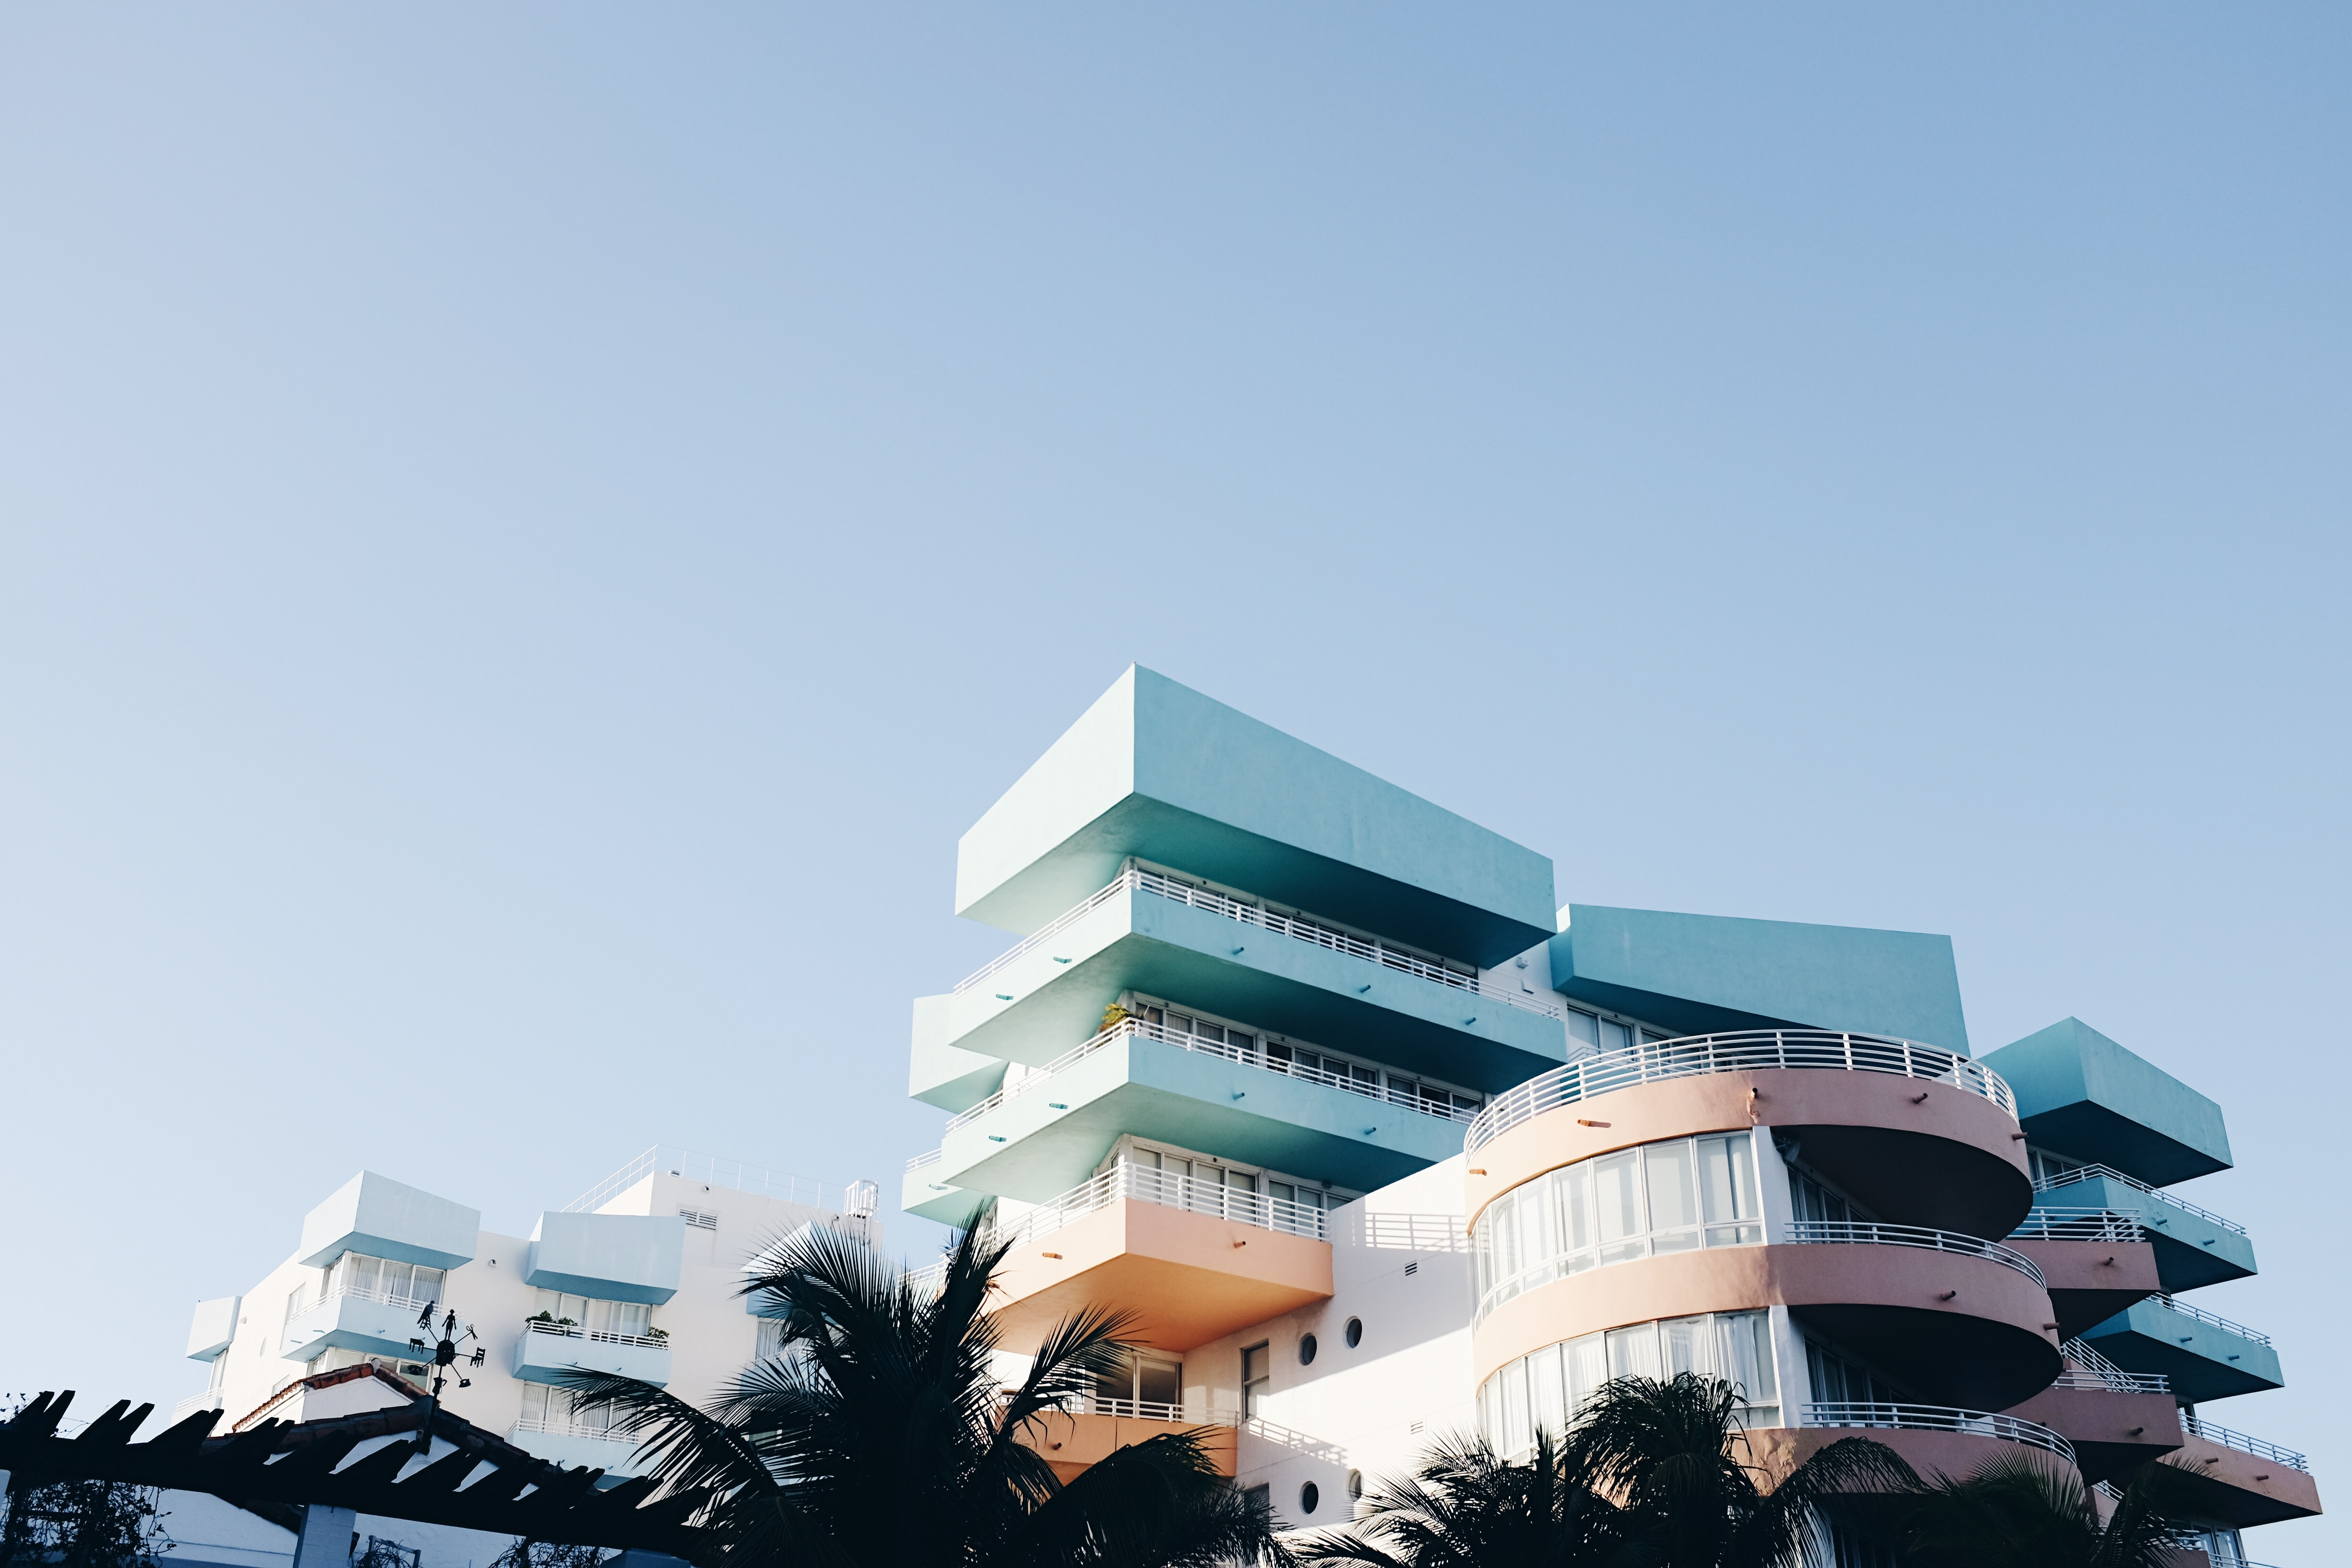 View of the hotel balconies at South Beach